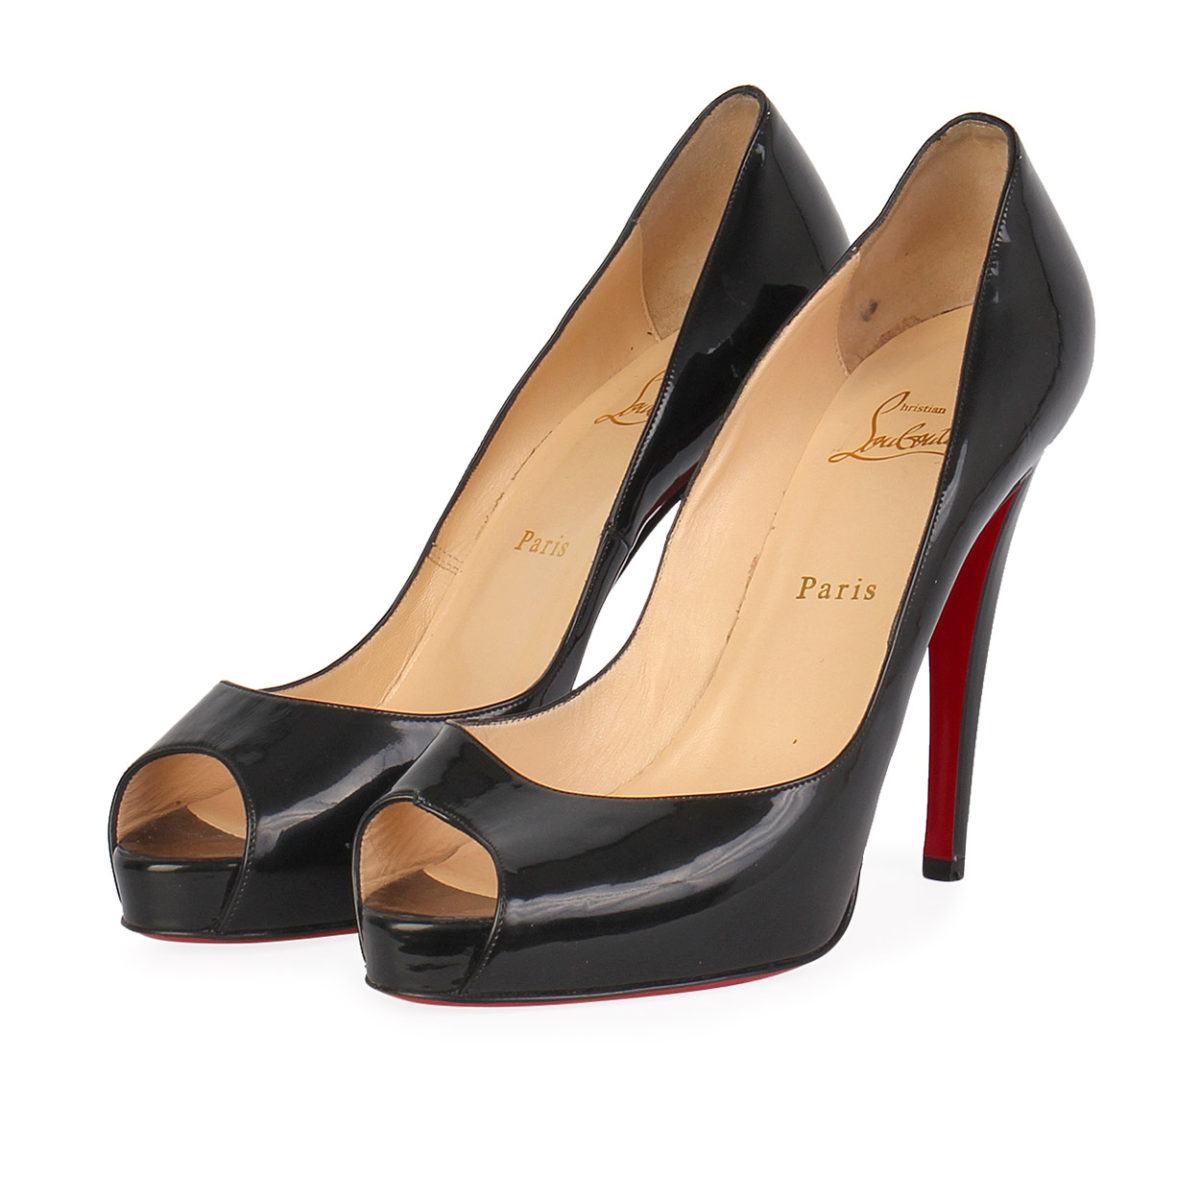 finest selection 4d740 bb109 CHRISTIAN LOUBOUTIN Patent Leather Very Prive Pumps Black - S: 39.5 (6.5)